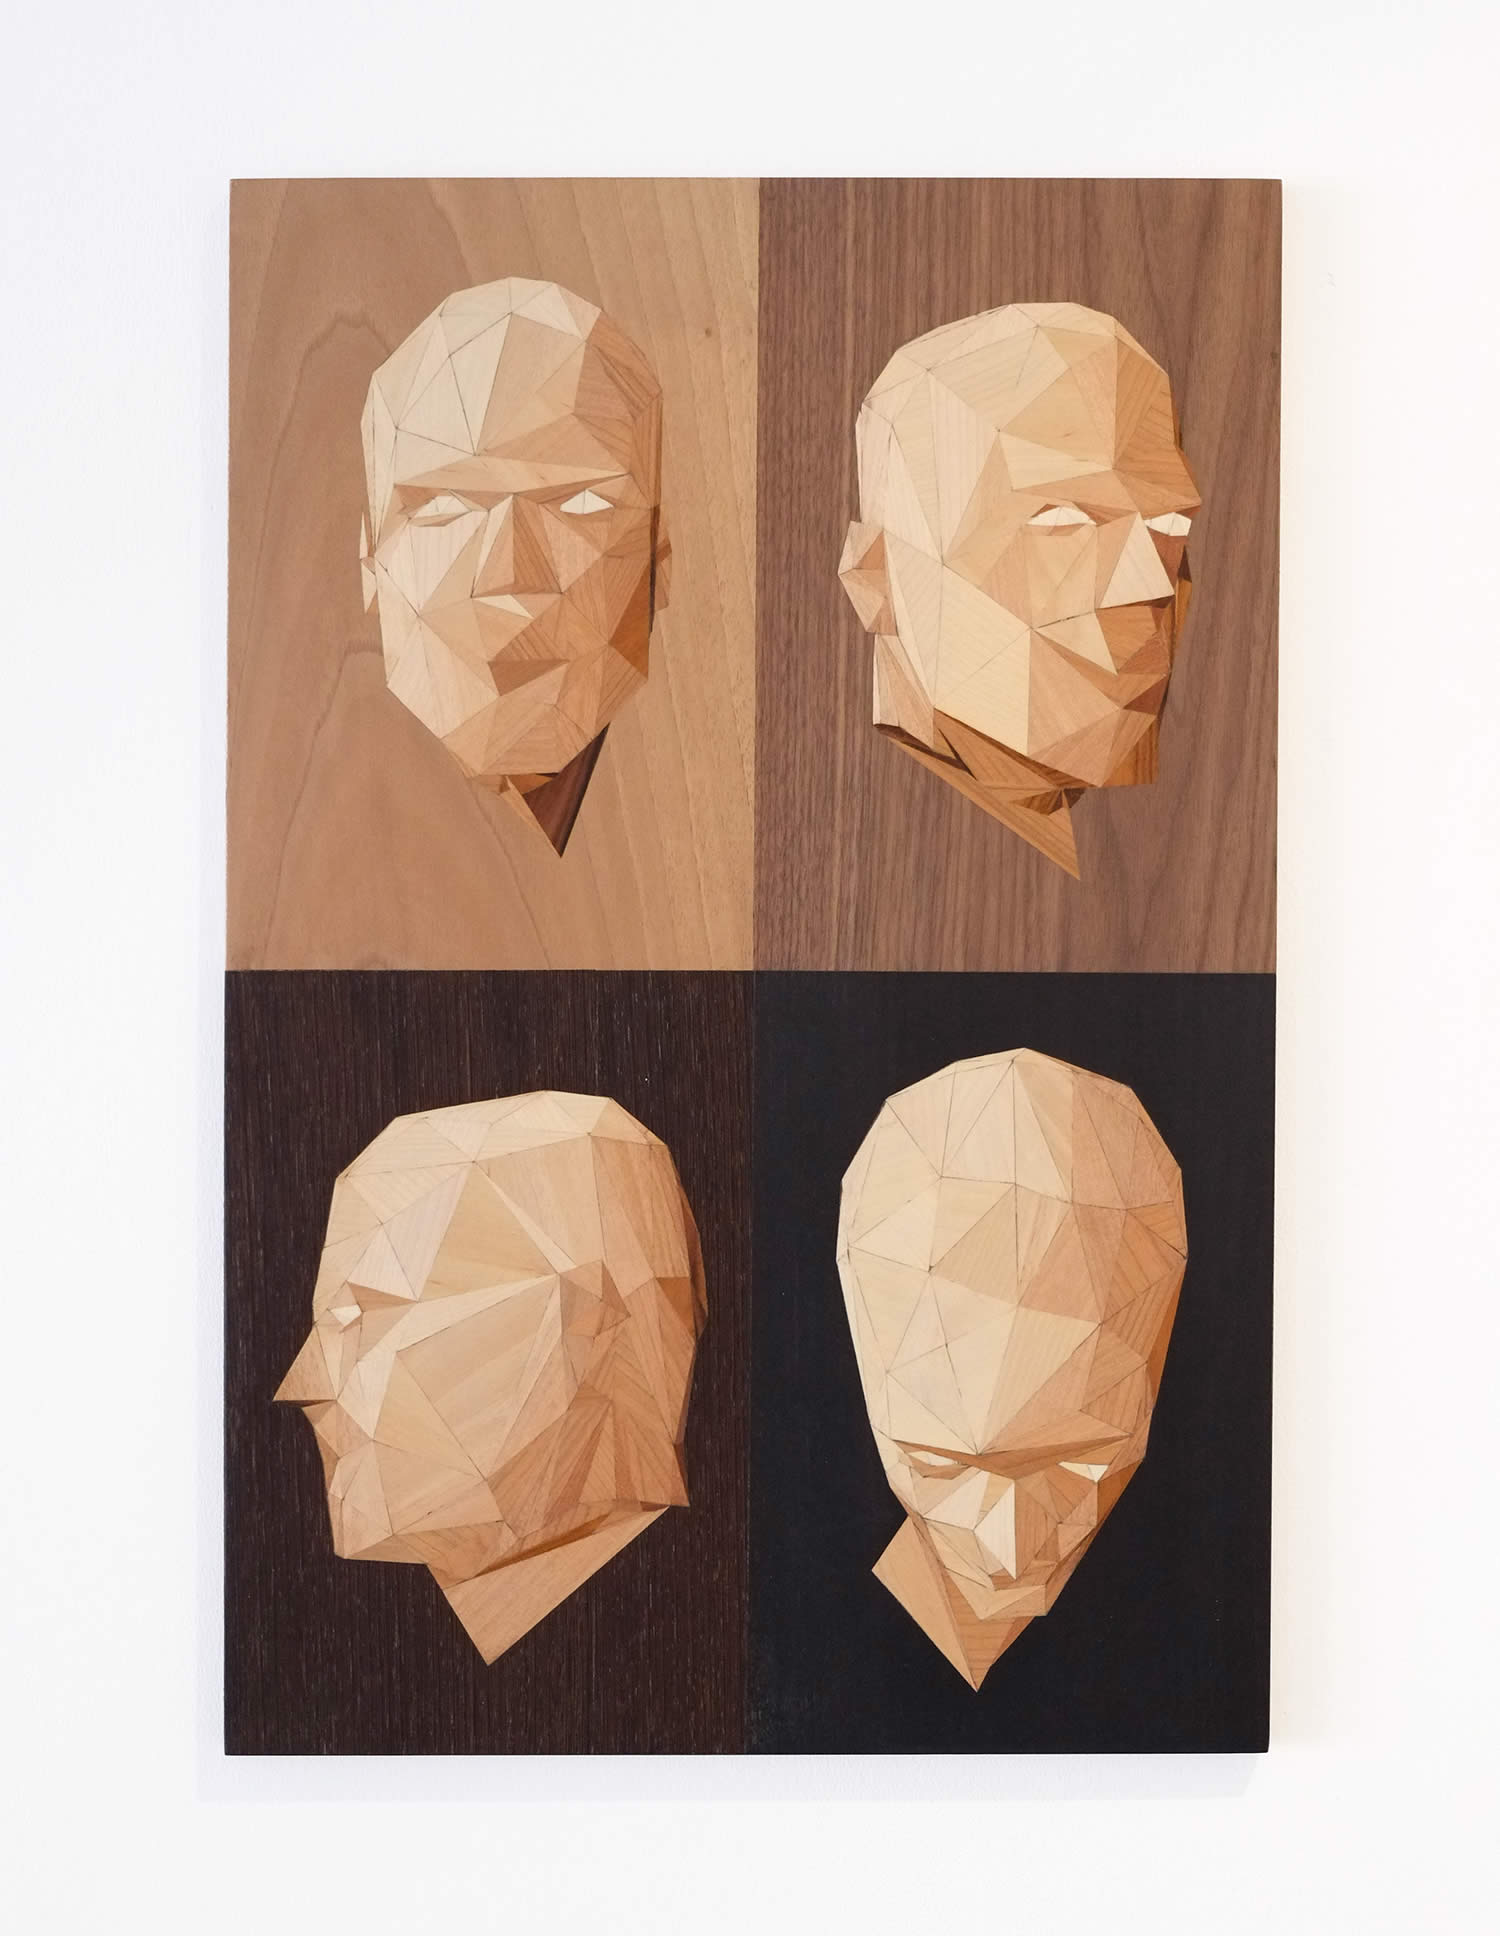 vullus, faces on wood by rocco pezella